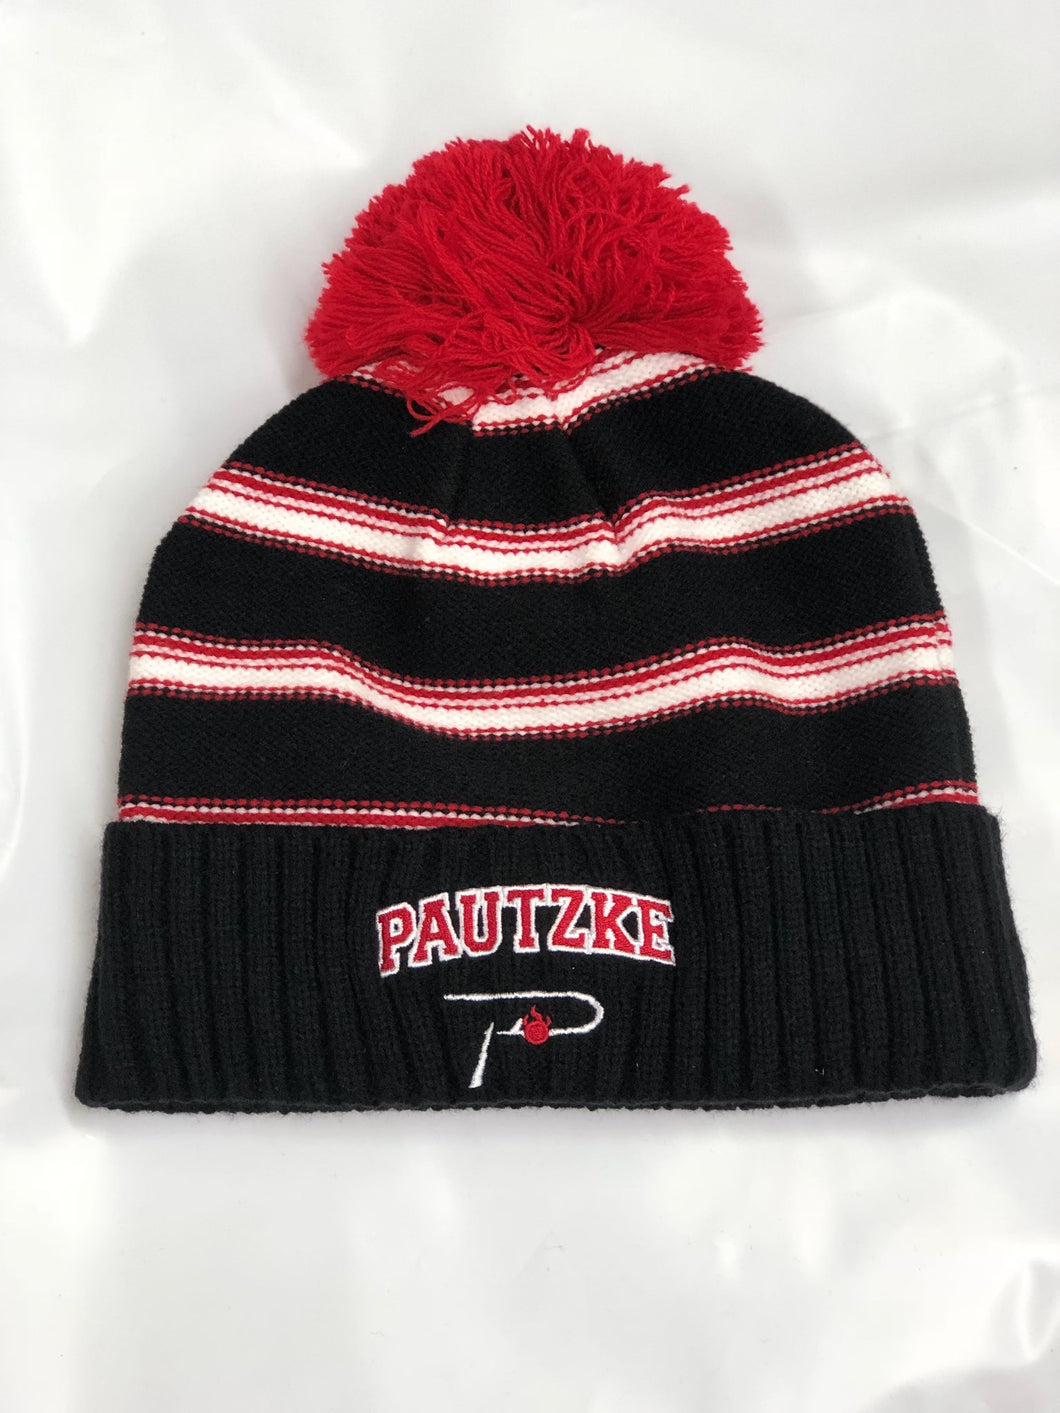 Pautzke 'P Hook' Black/Red Fleece Lined Beanie